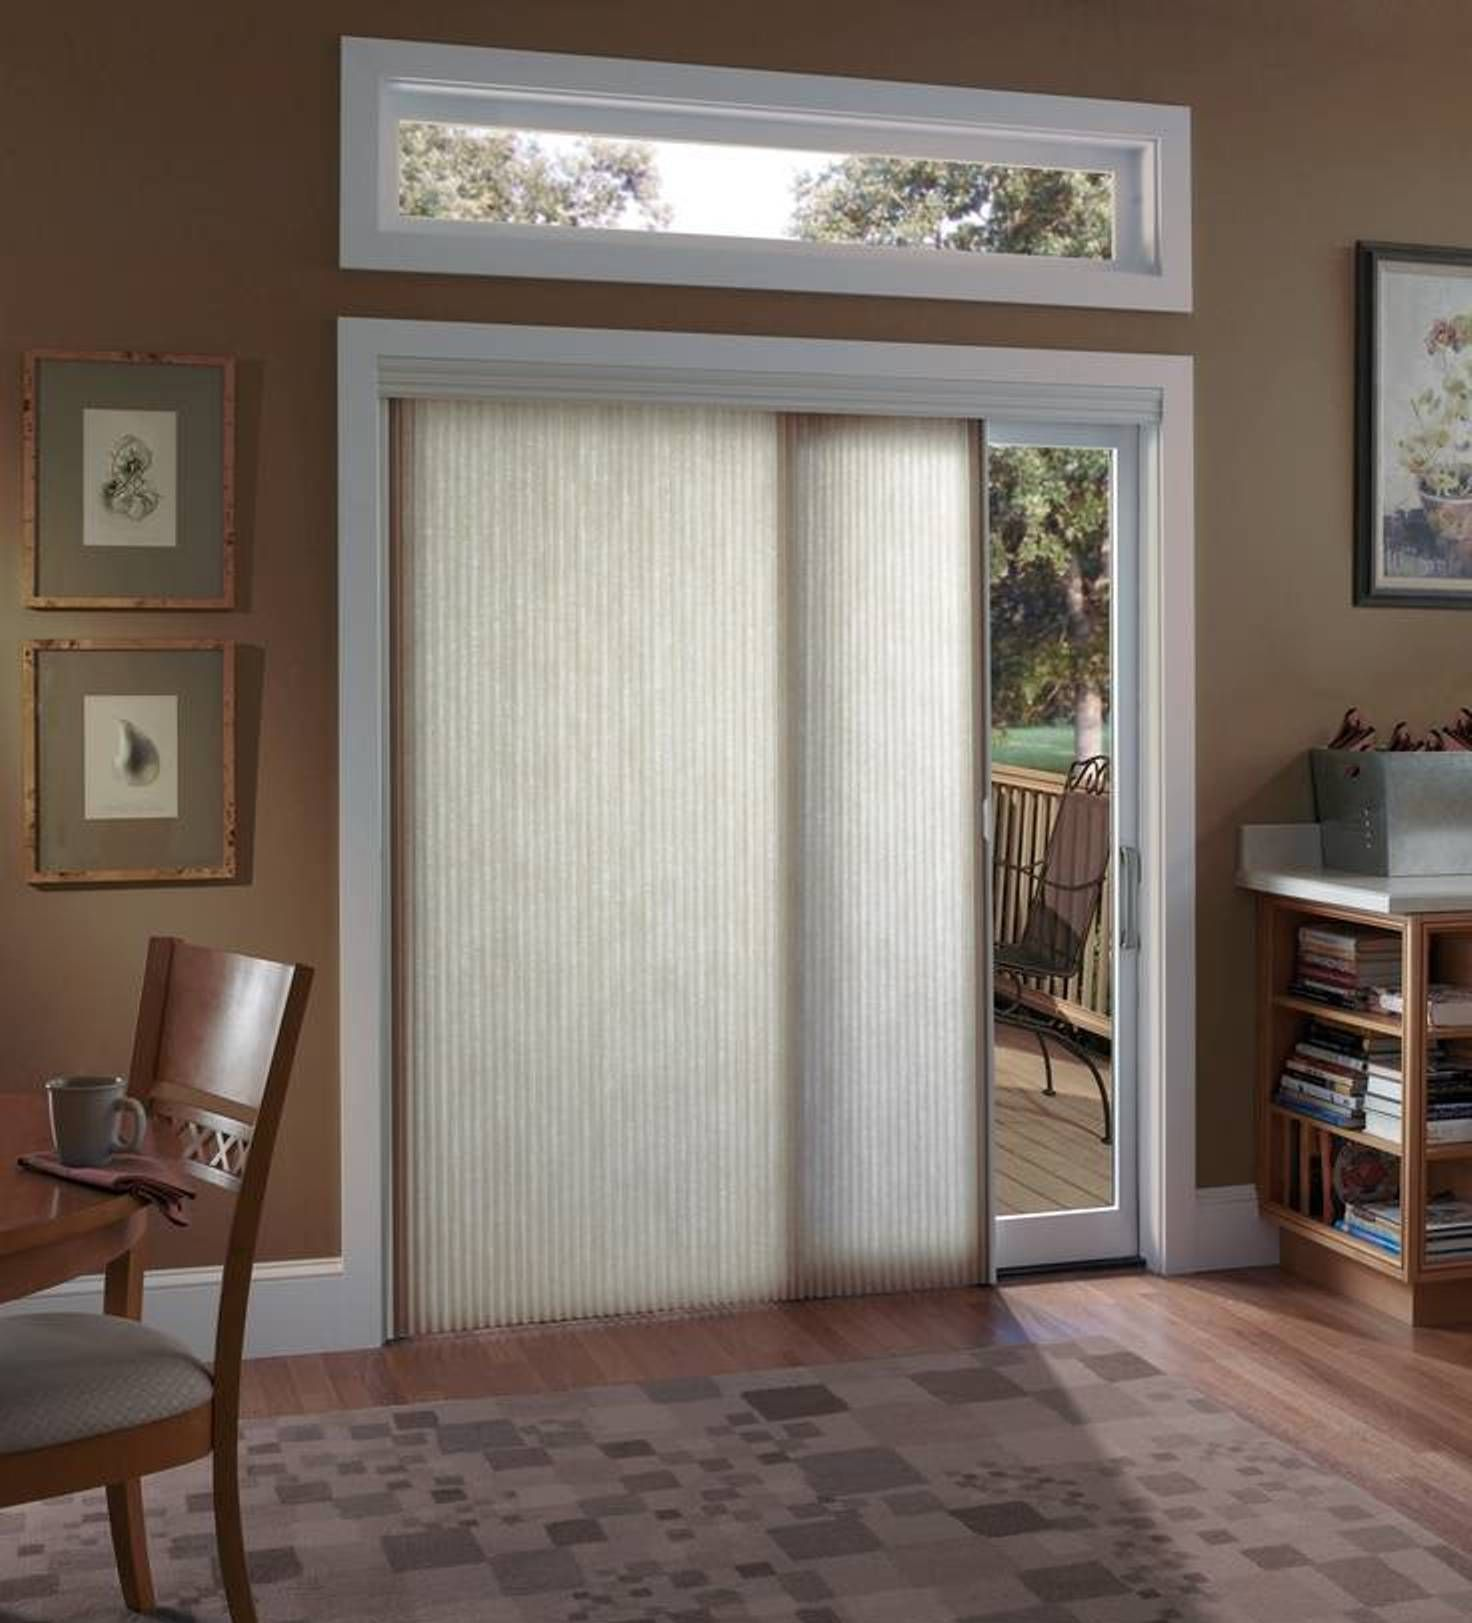 Patio door curtains and blinds - Drapes For Sliding Glass Doors Https Www Educationalequipment Com K